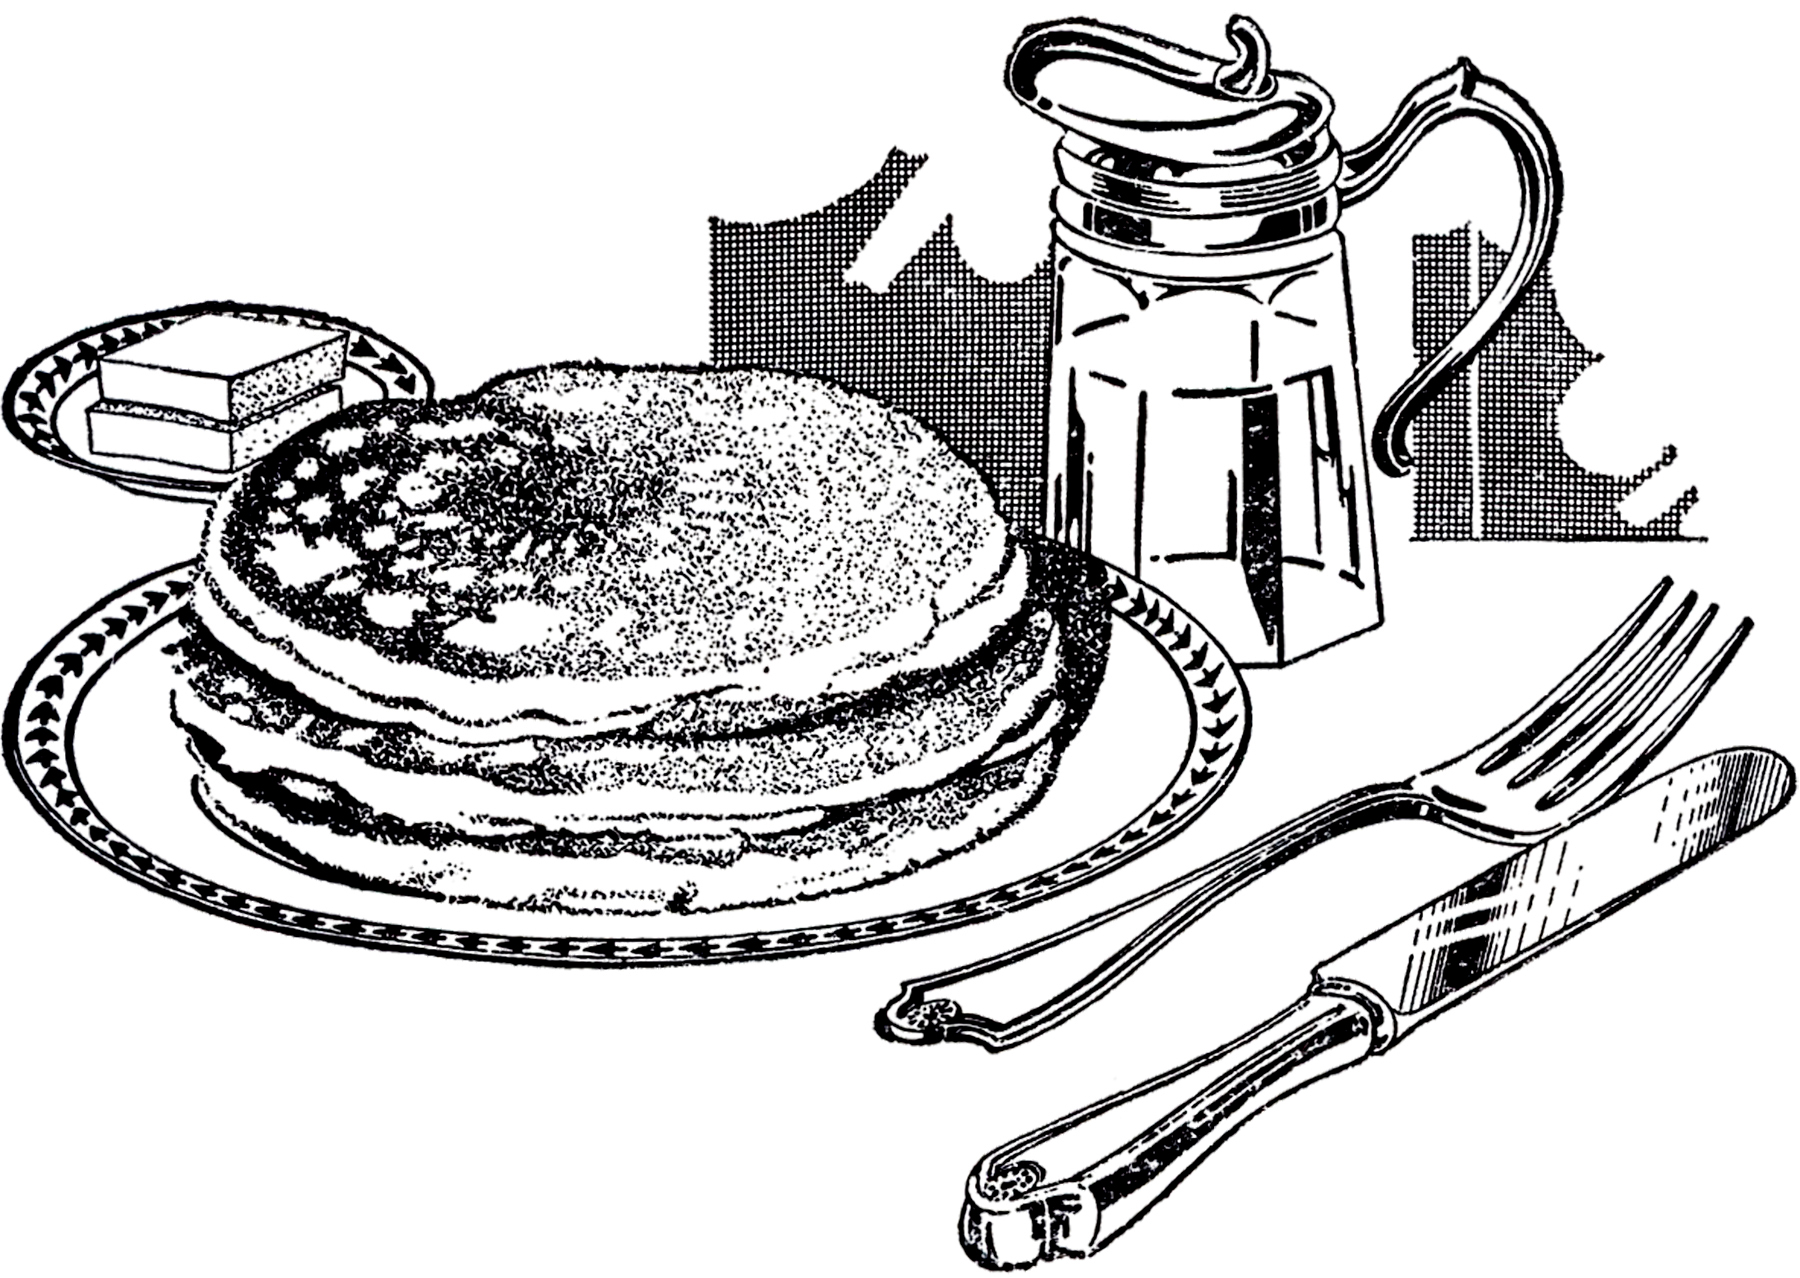 Eating breakfast clipart free clipart images 2.